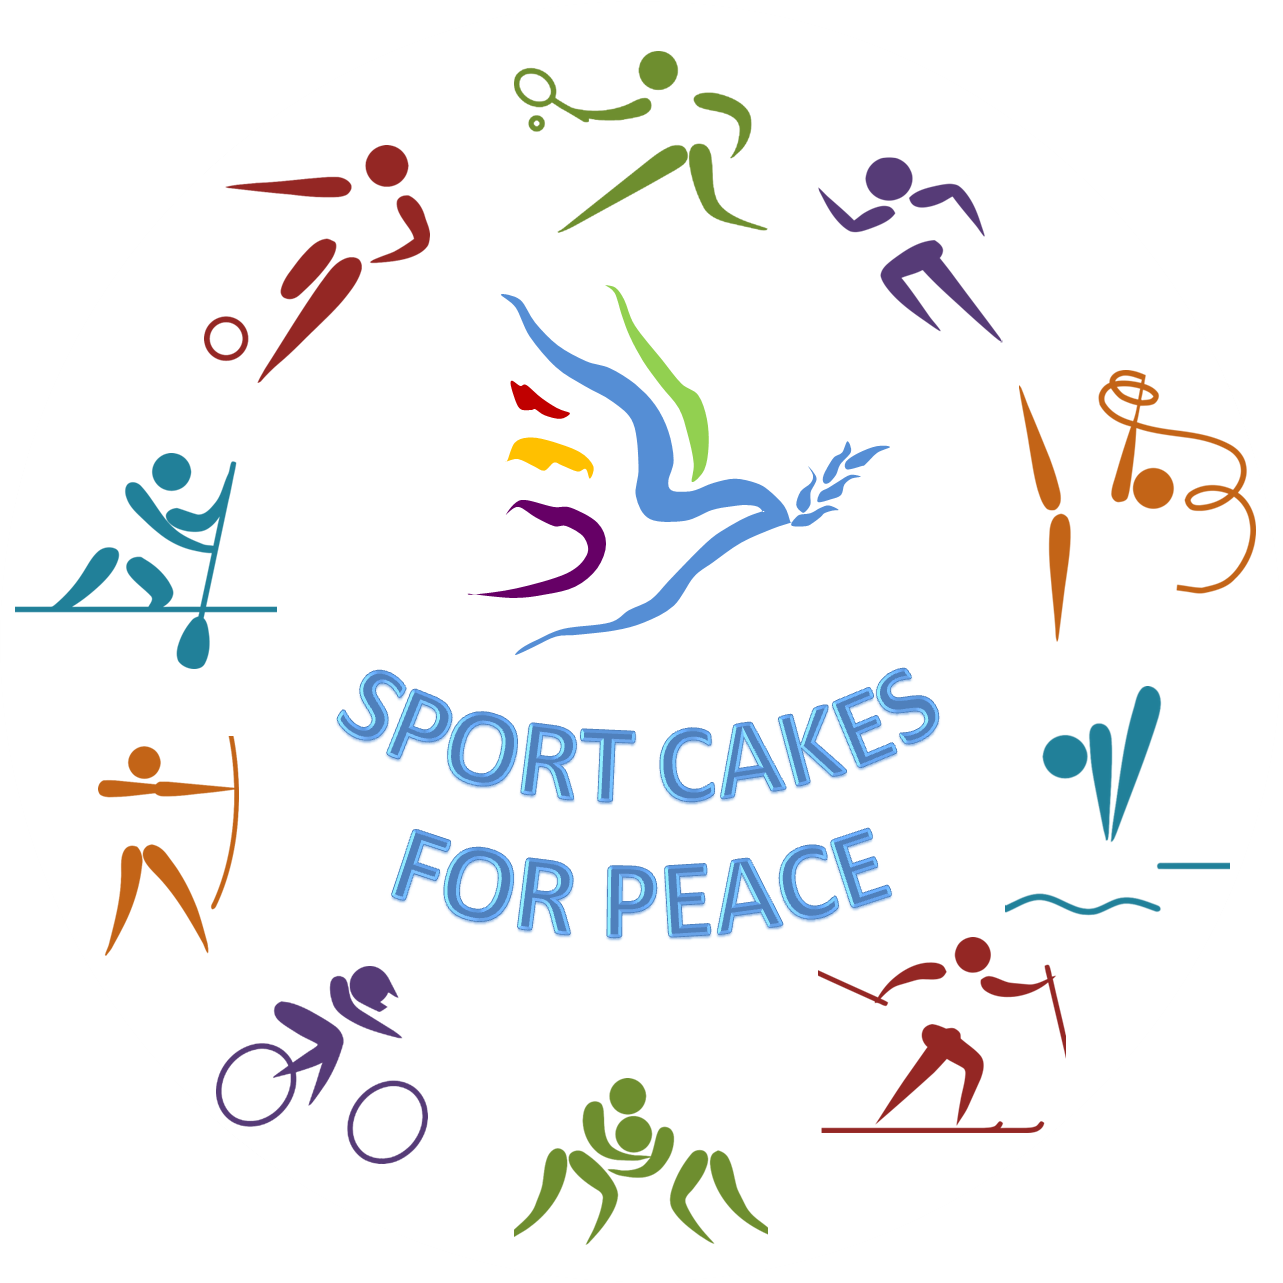 Sports Cakes for Peace